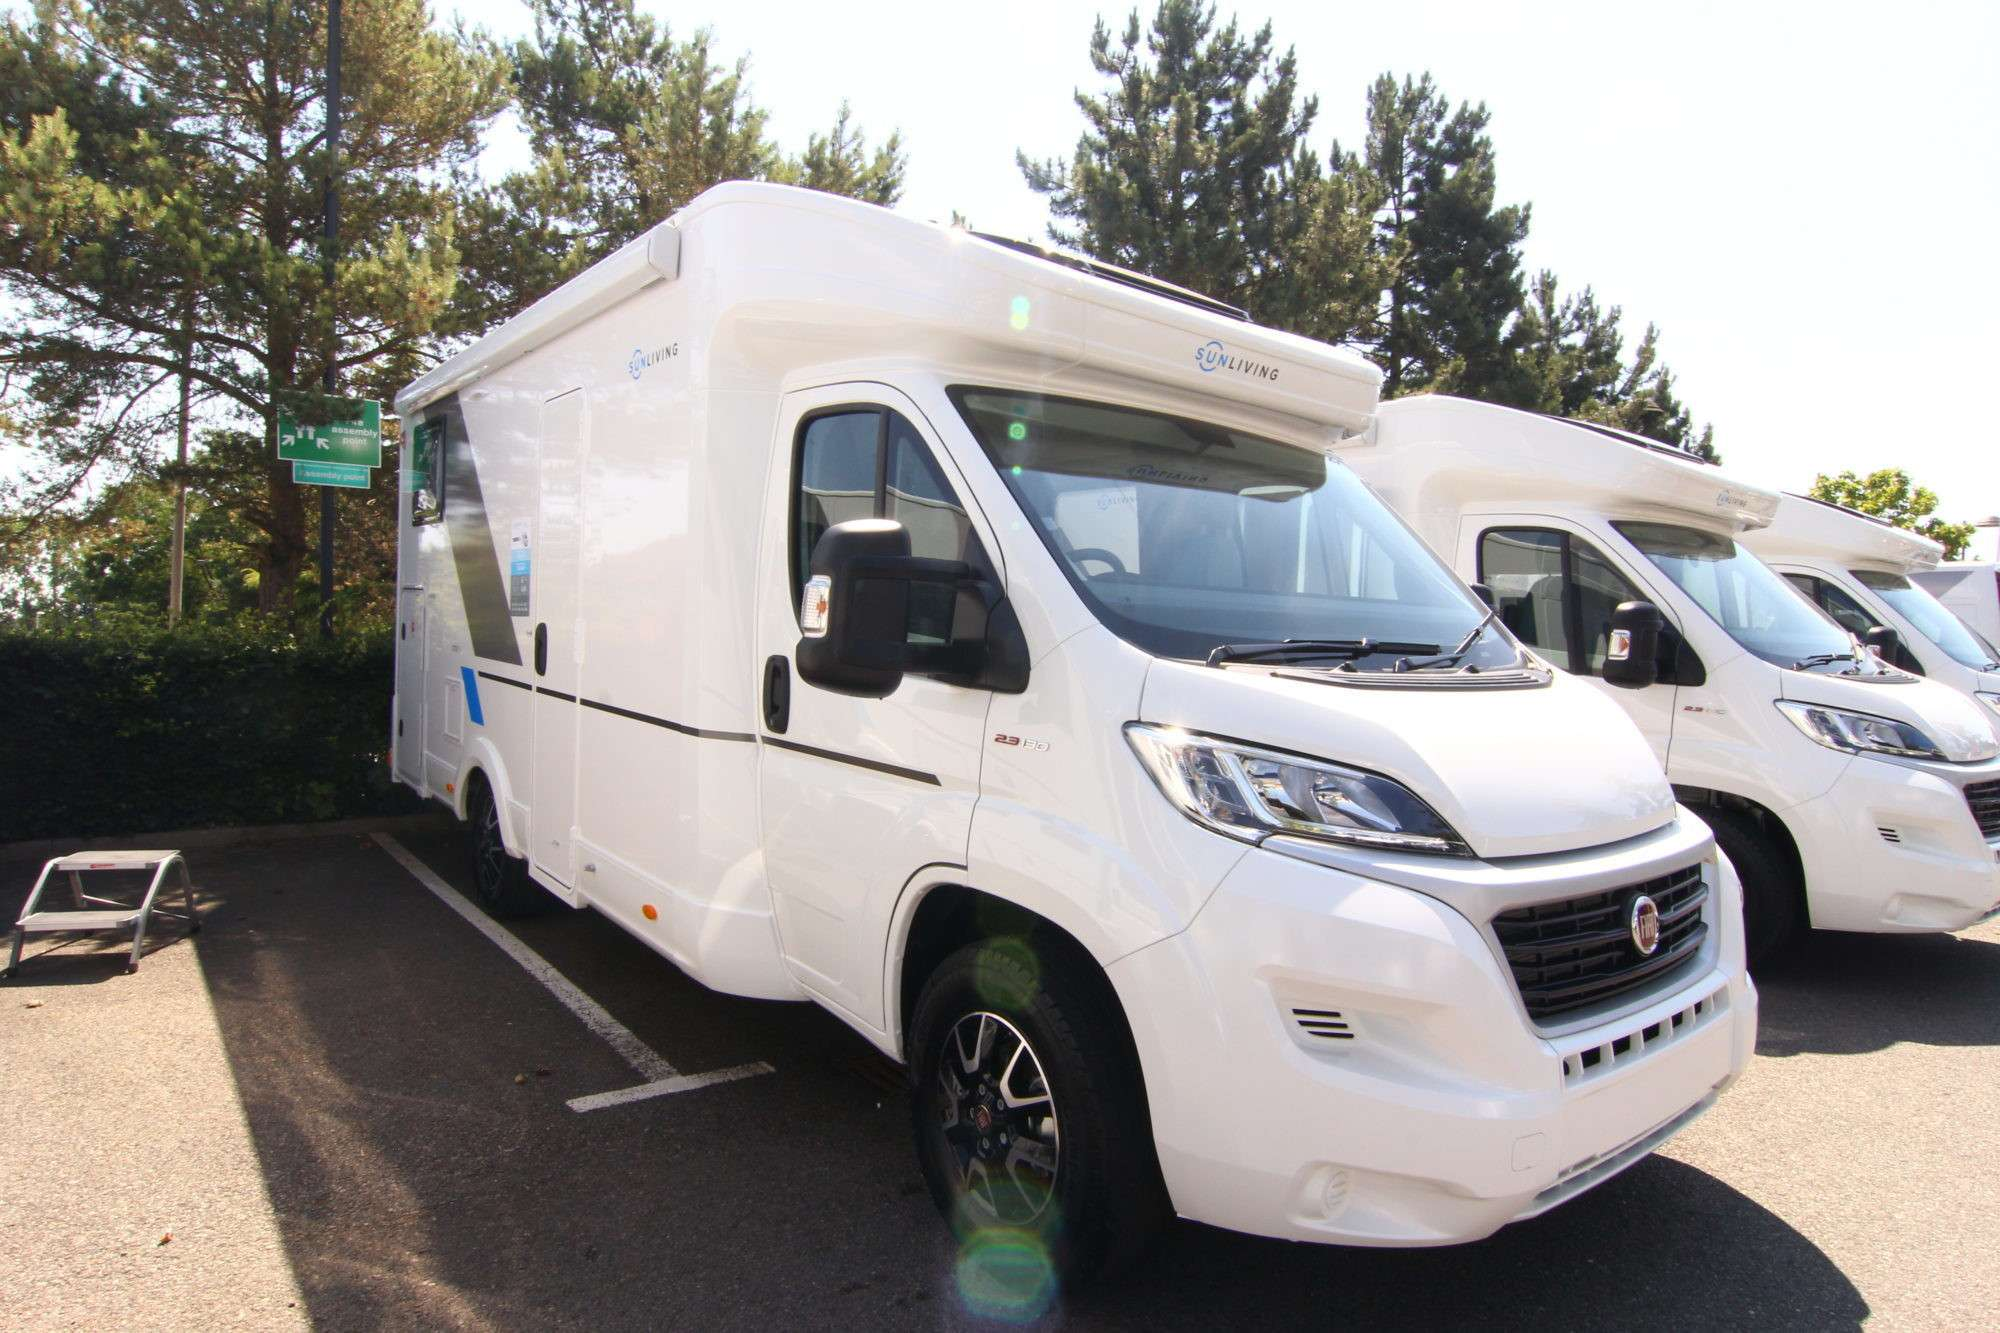 A Low Profile Motorhome called Seve and for hire in portrush, Antrim